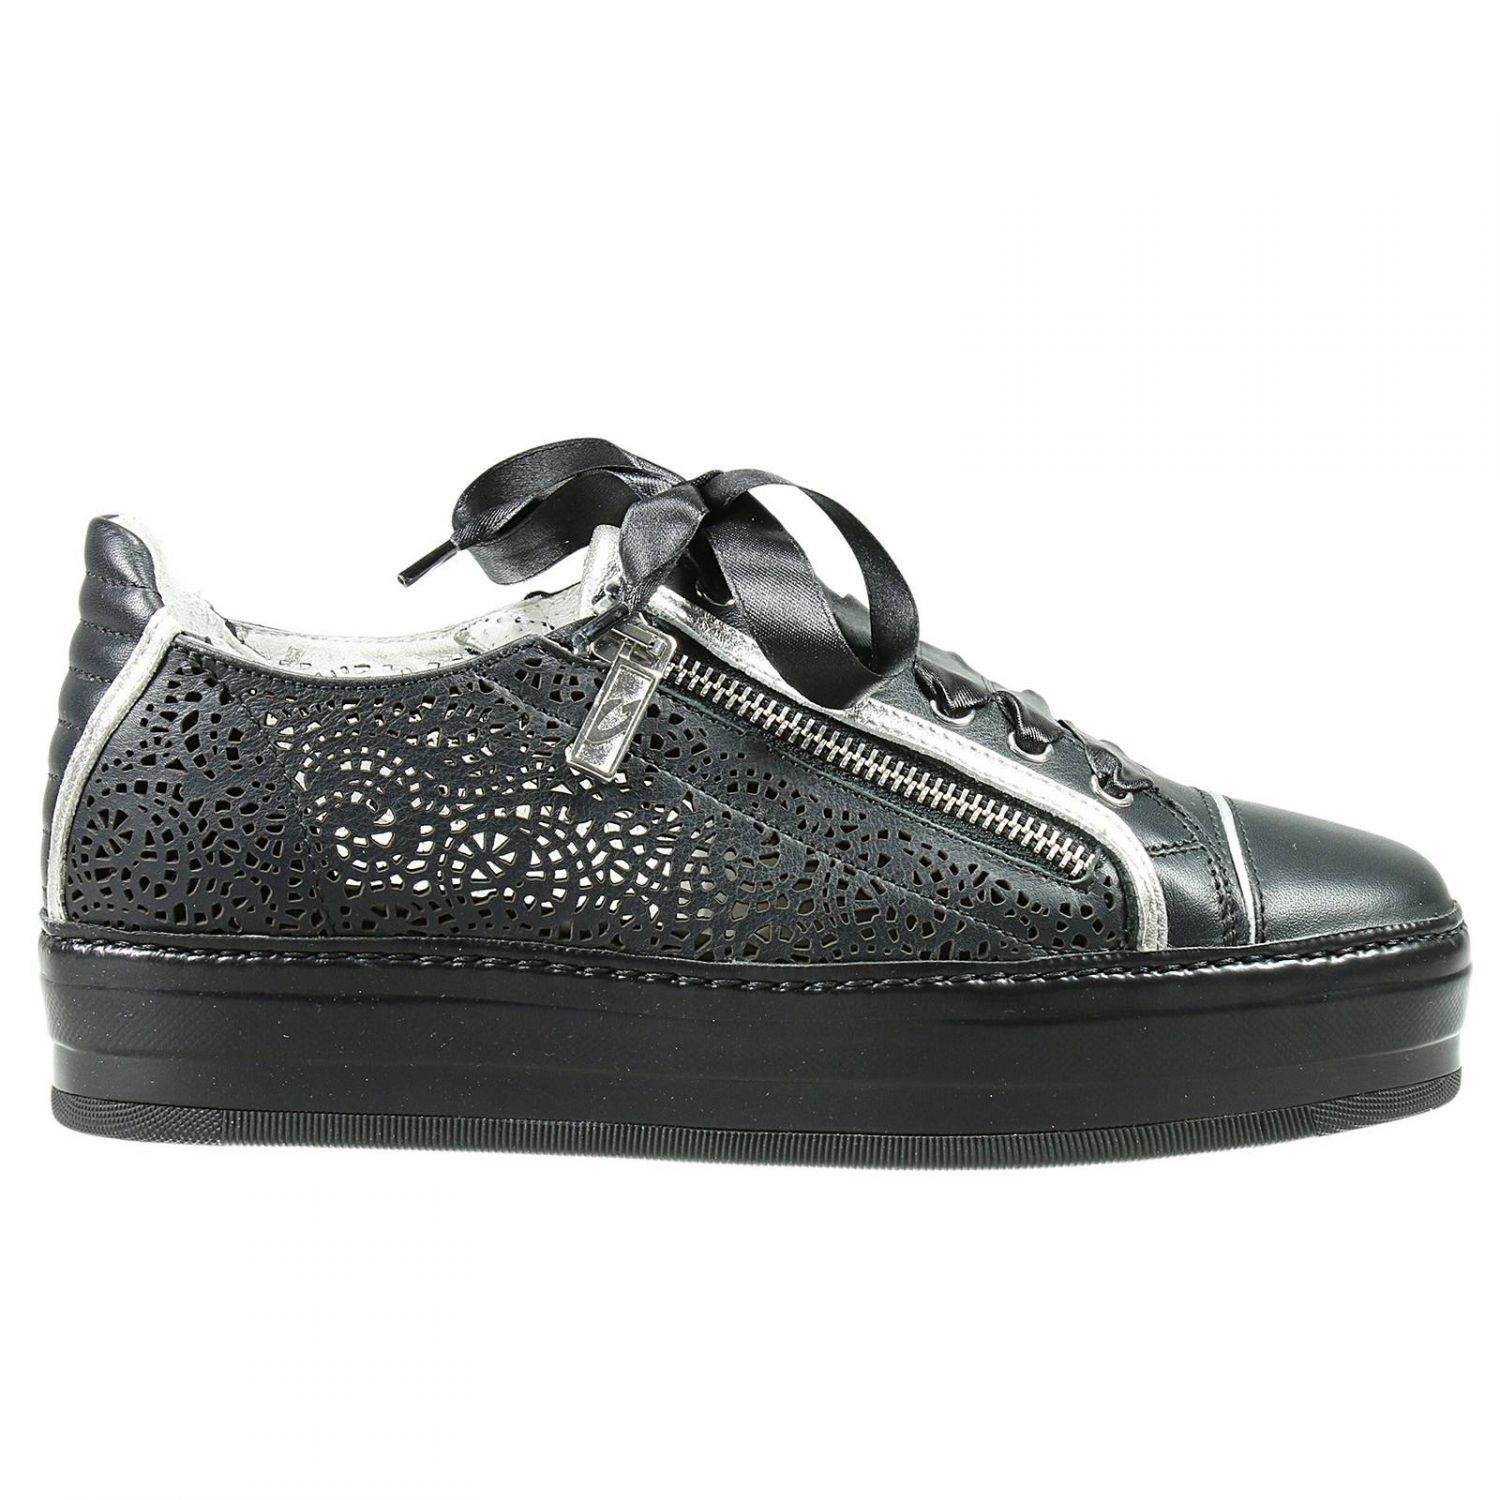 Mens Shoes Alberto Guardiani, Style code: 72433-sx7480-